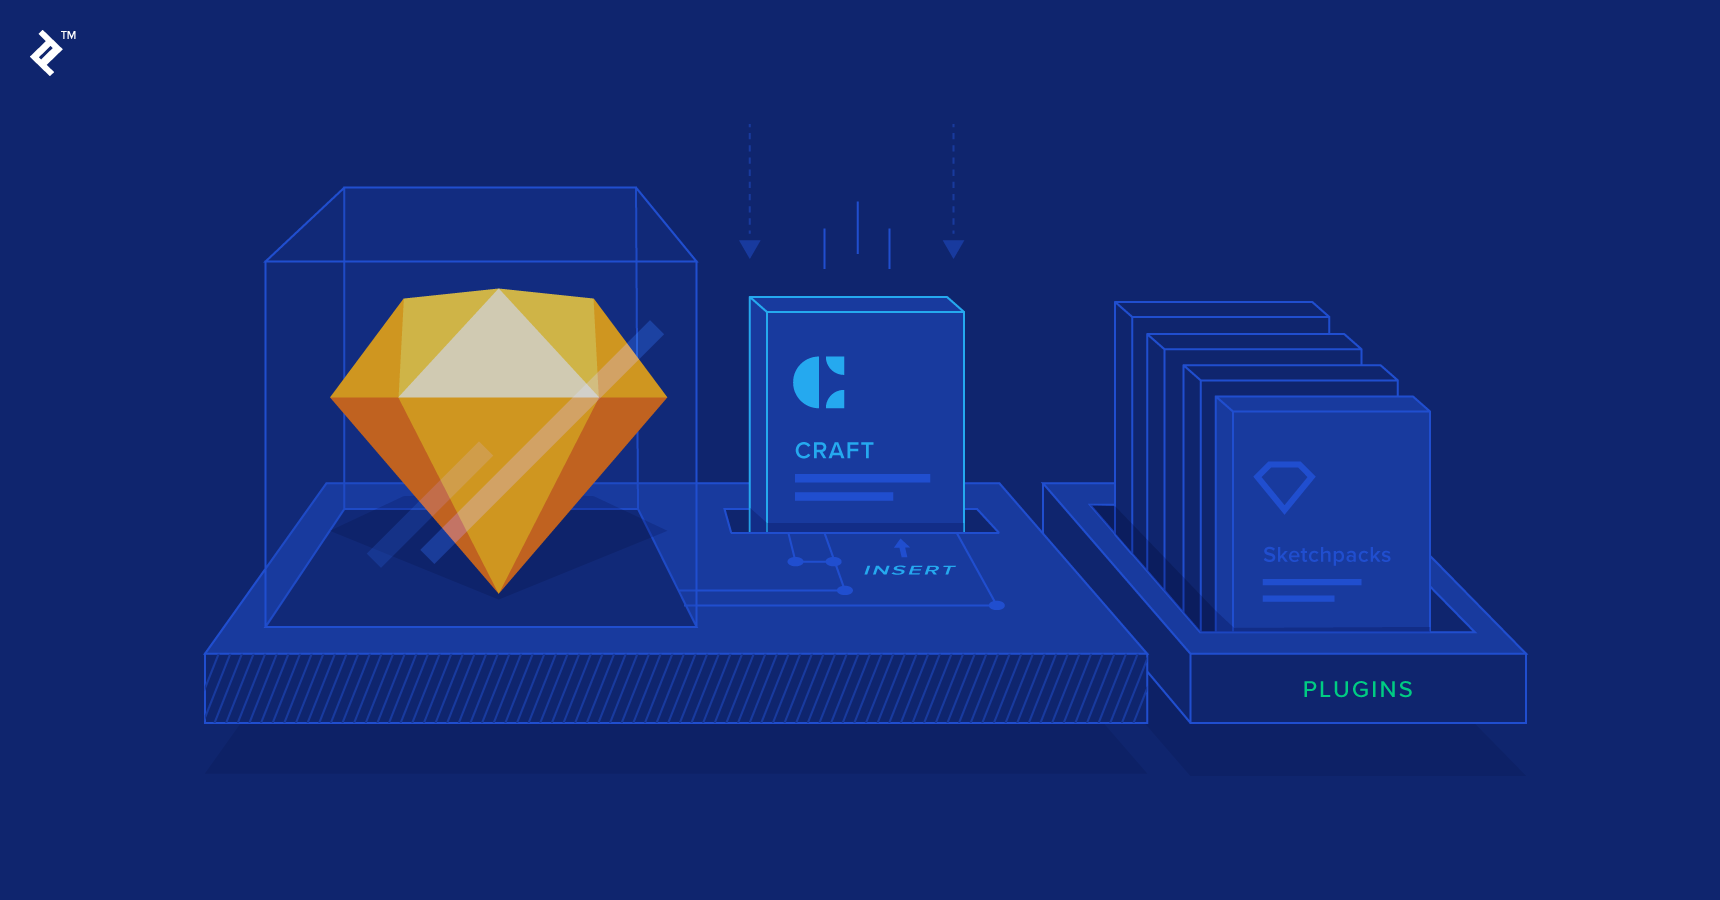 The Ultimate List of 50 of the Best Sketch Plugins | Toptal